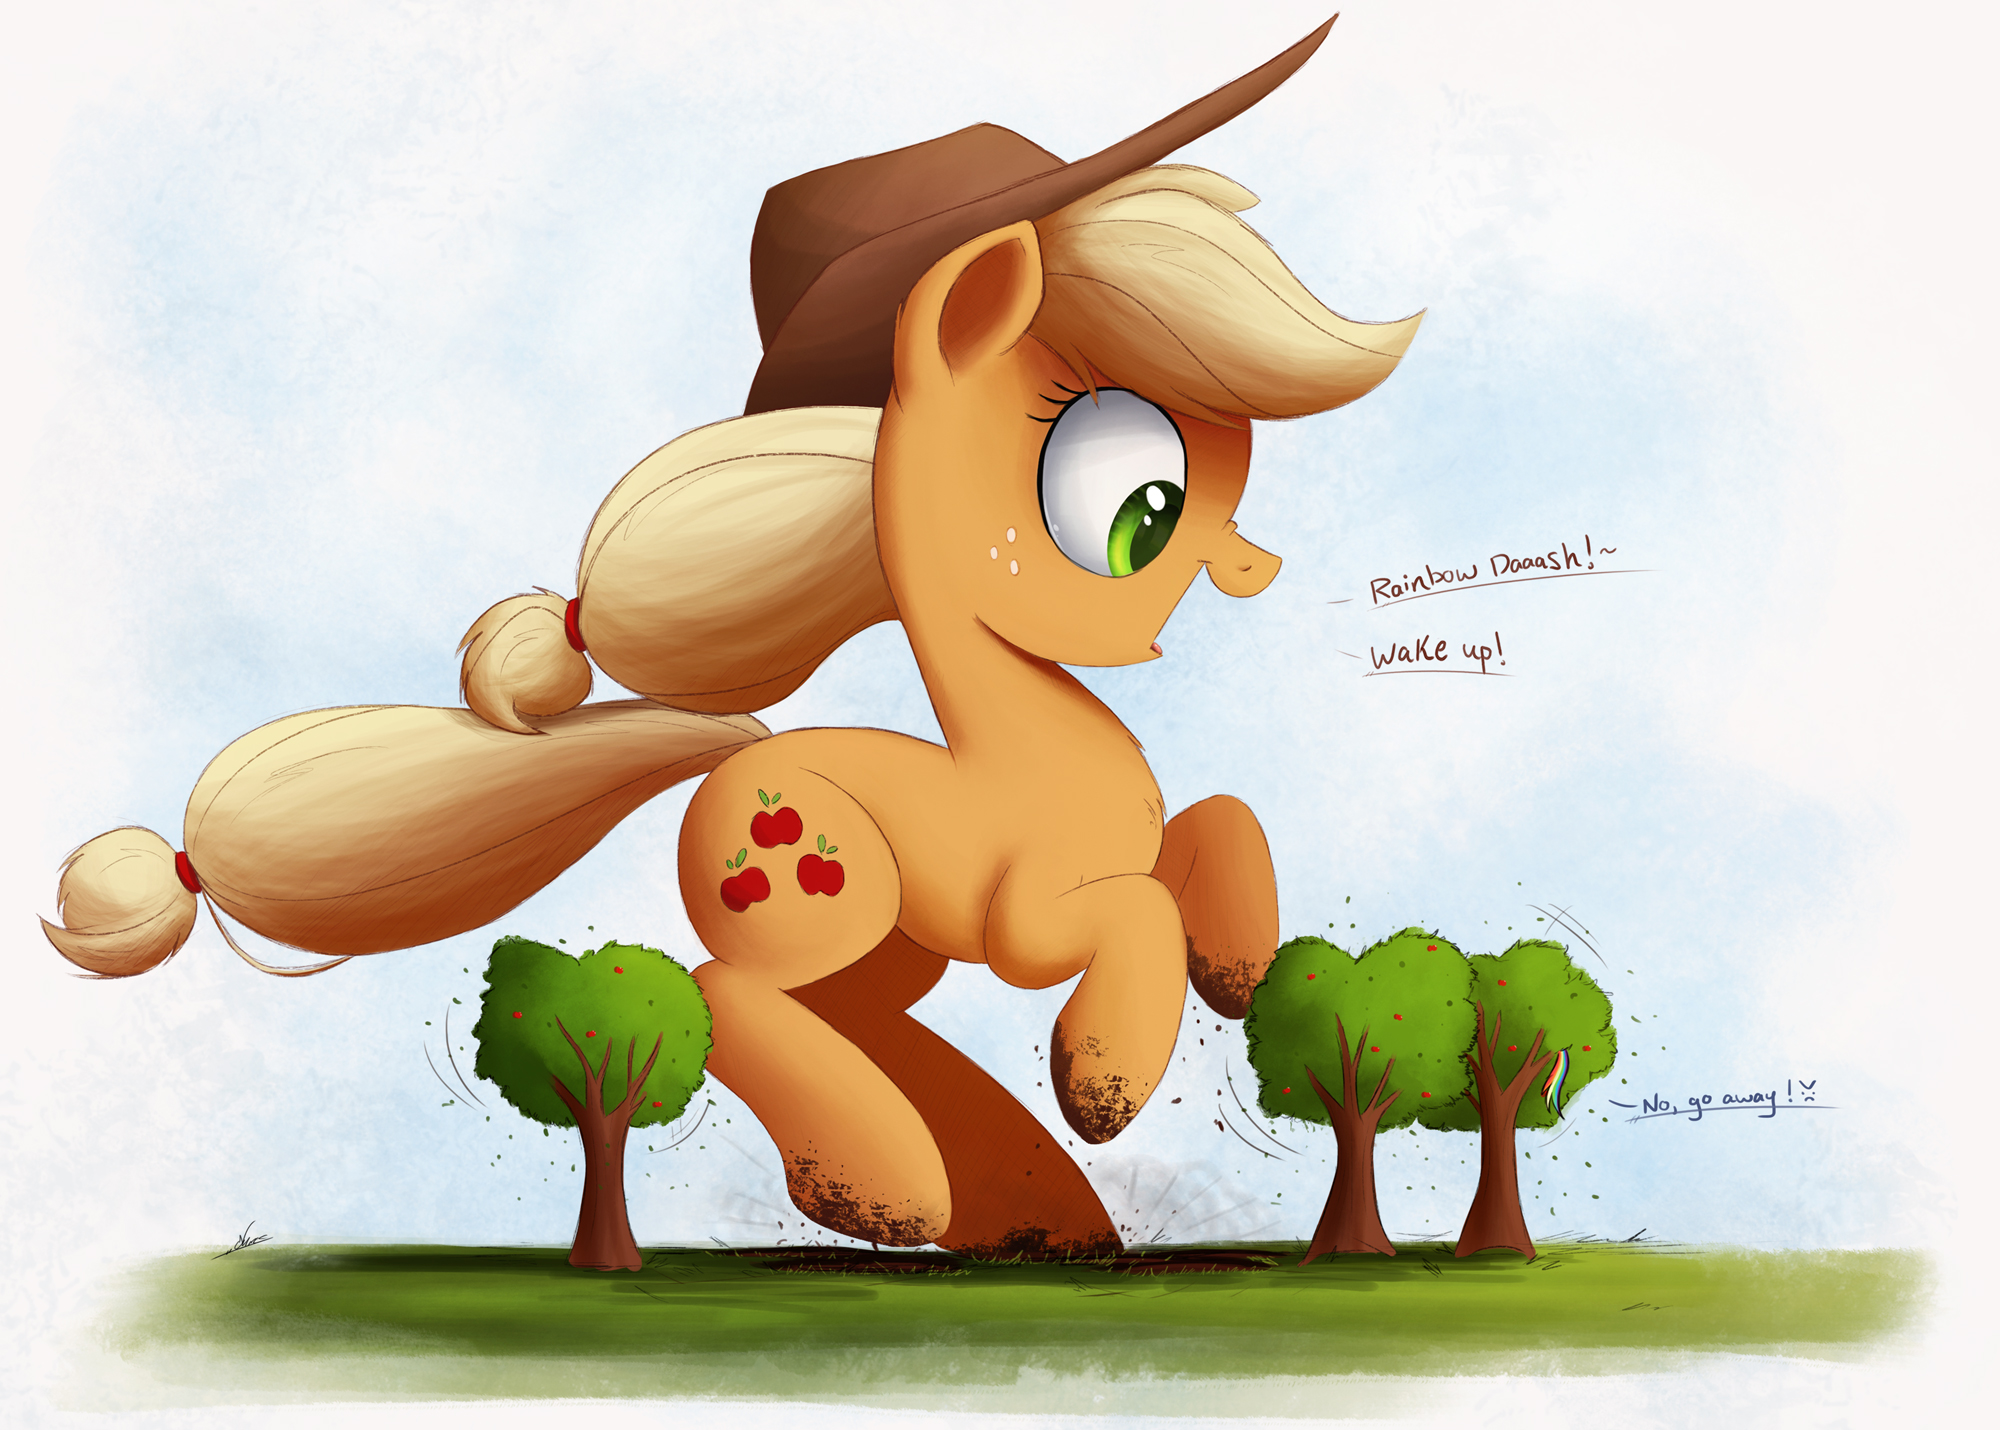 big_apple_is_silly_apple_by_ncmares-d9xk